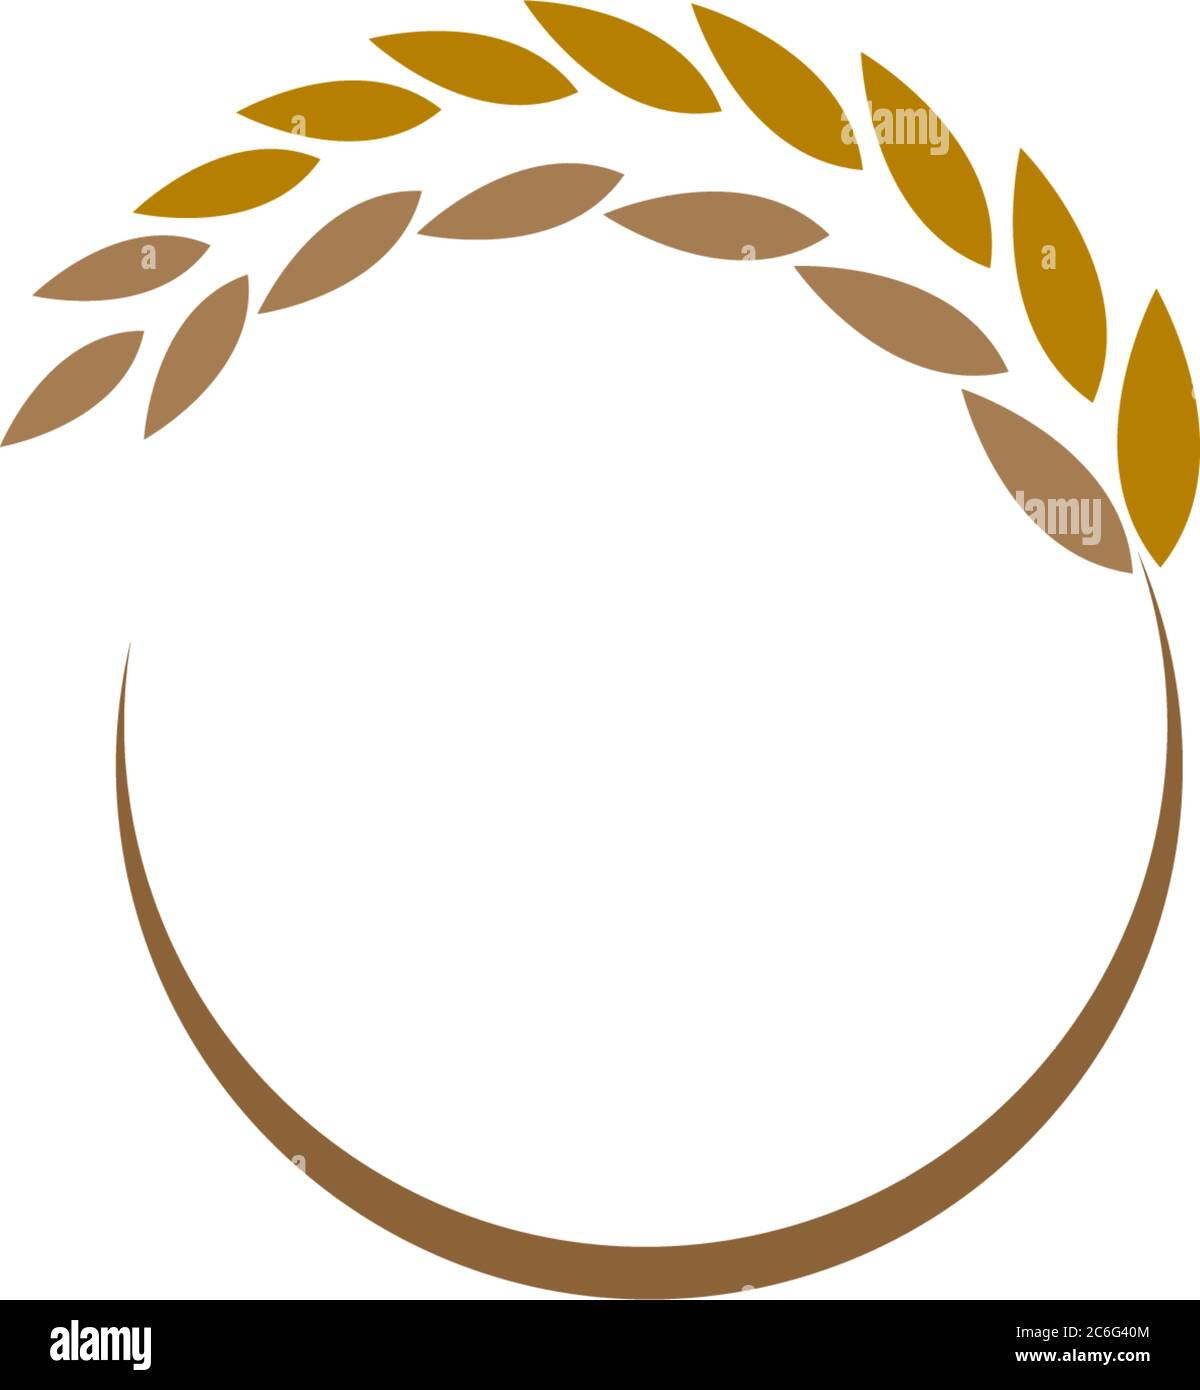 rice plant logo icon concept illustration stock vector image art alamy https www alamy com rice plant logo icon concept illustration image365460052 html